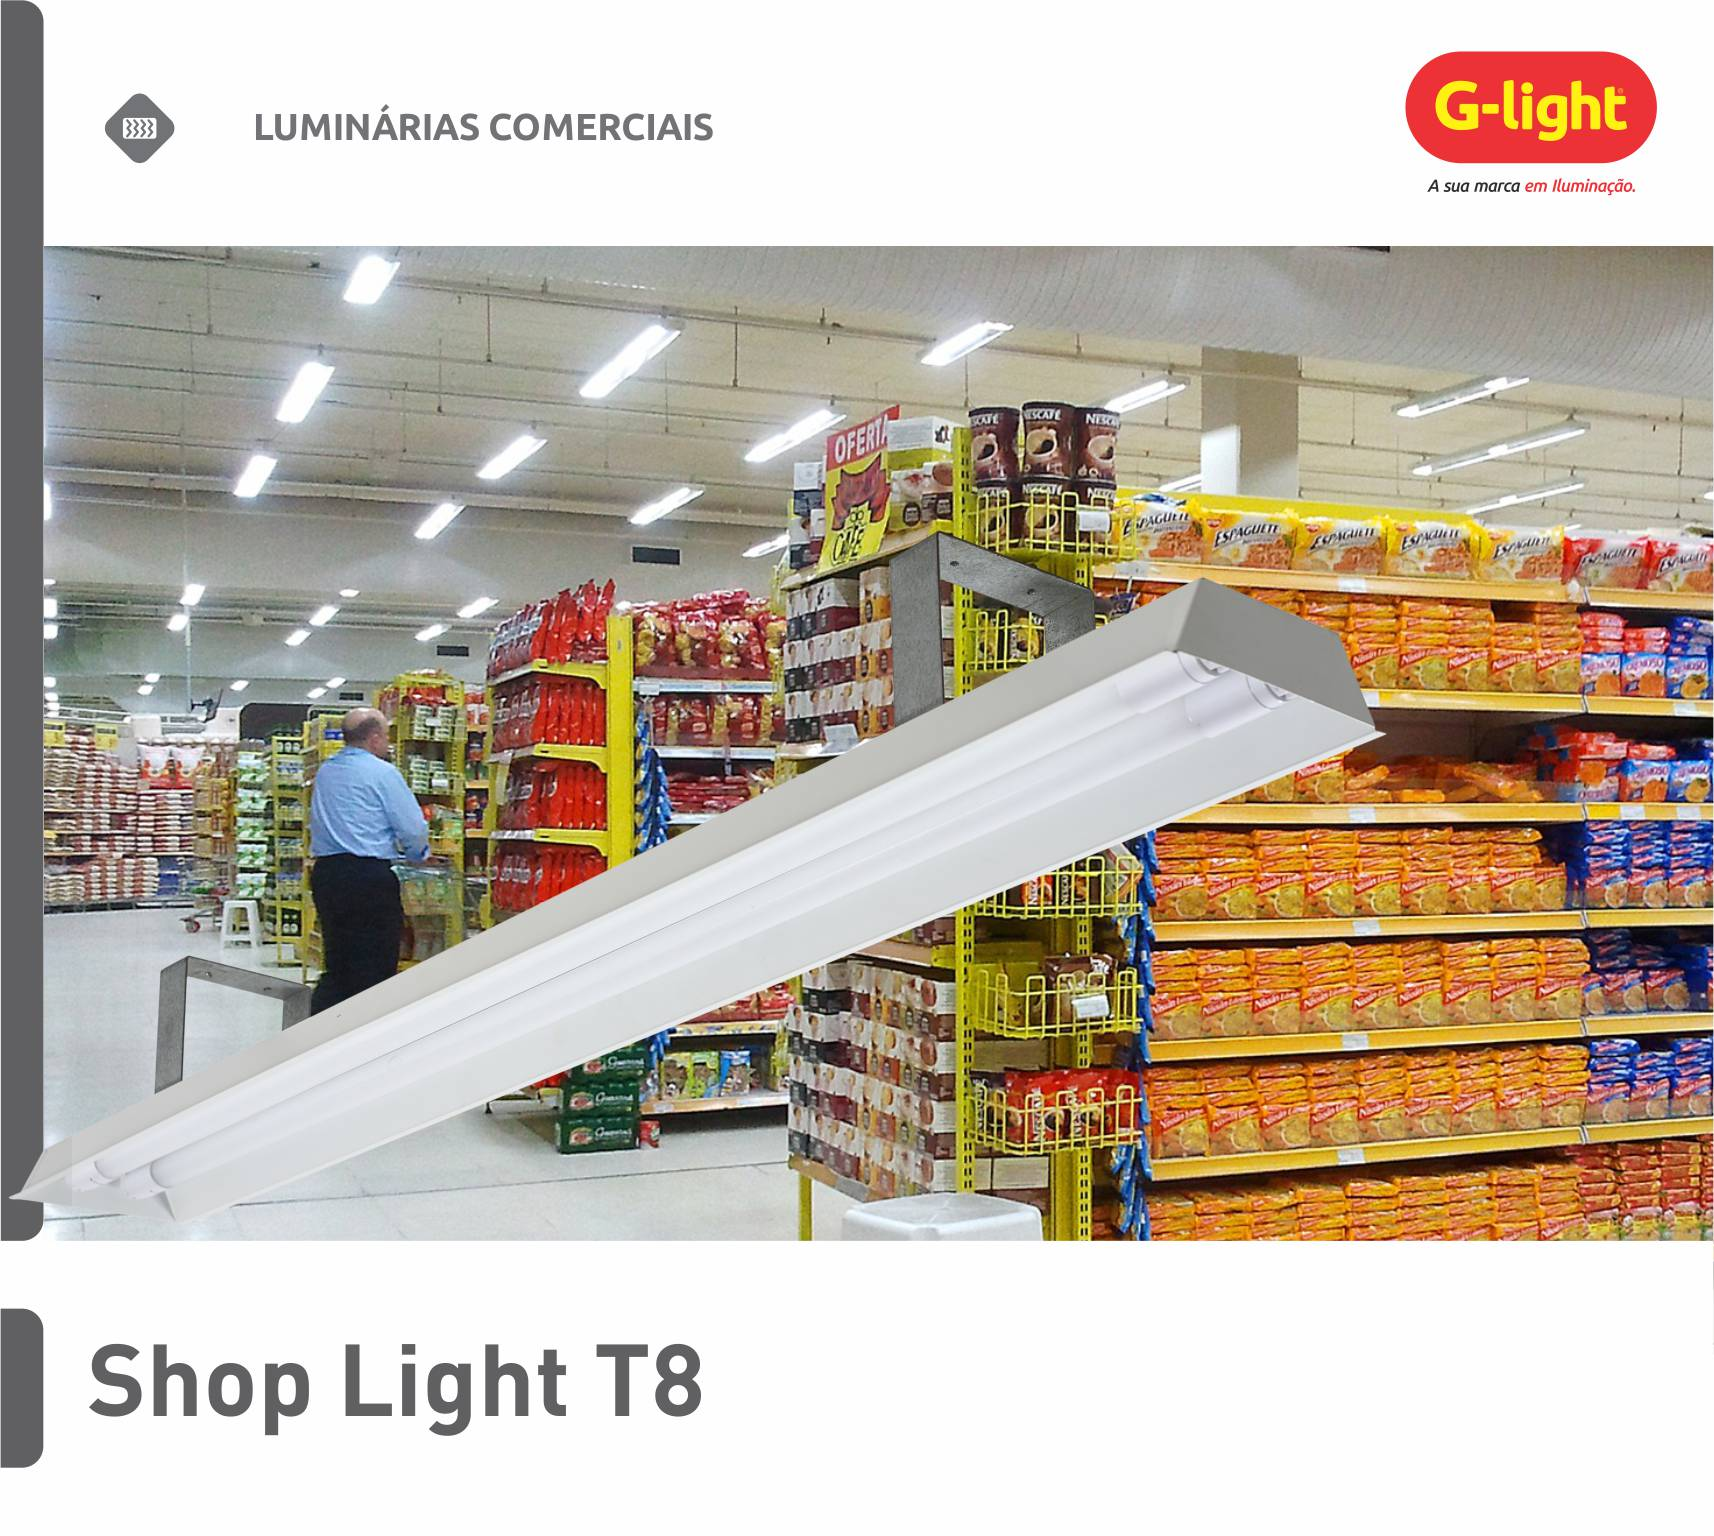 Luminária Shop Light T8